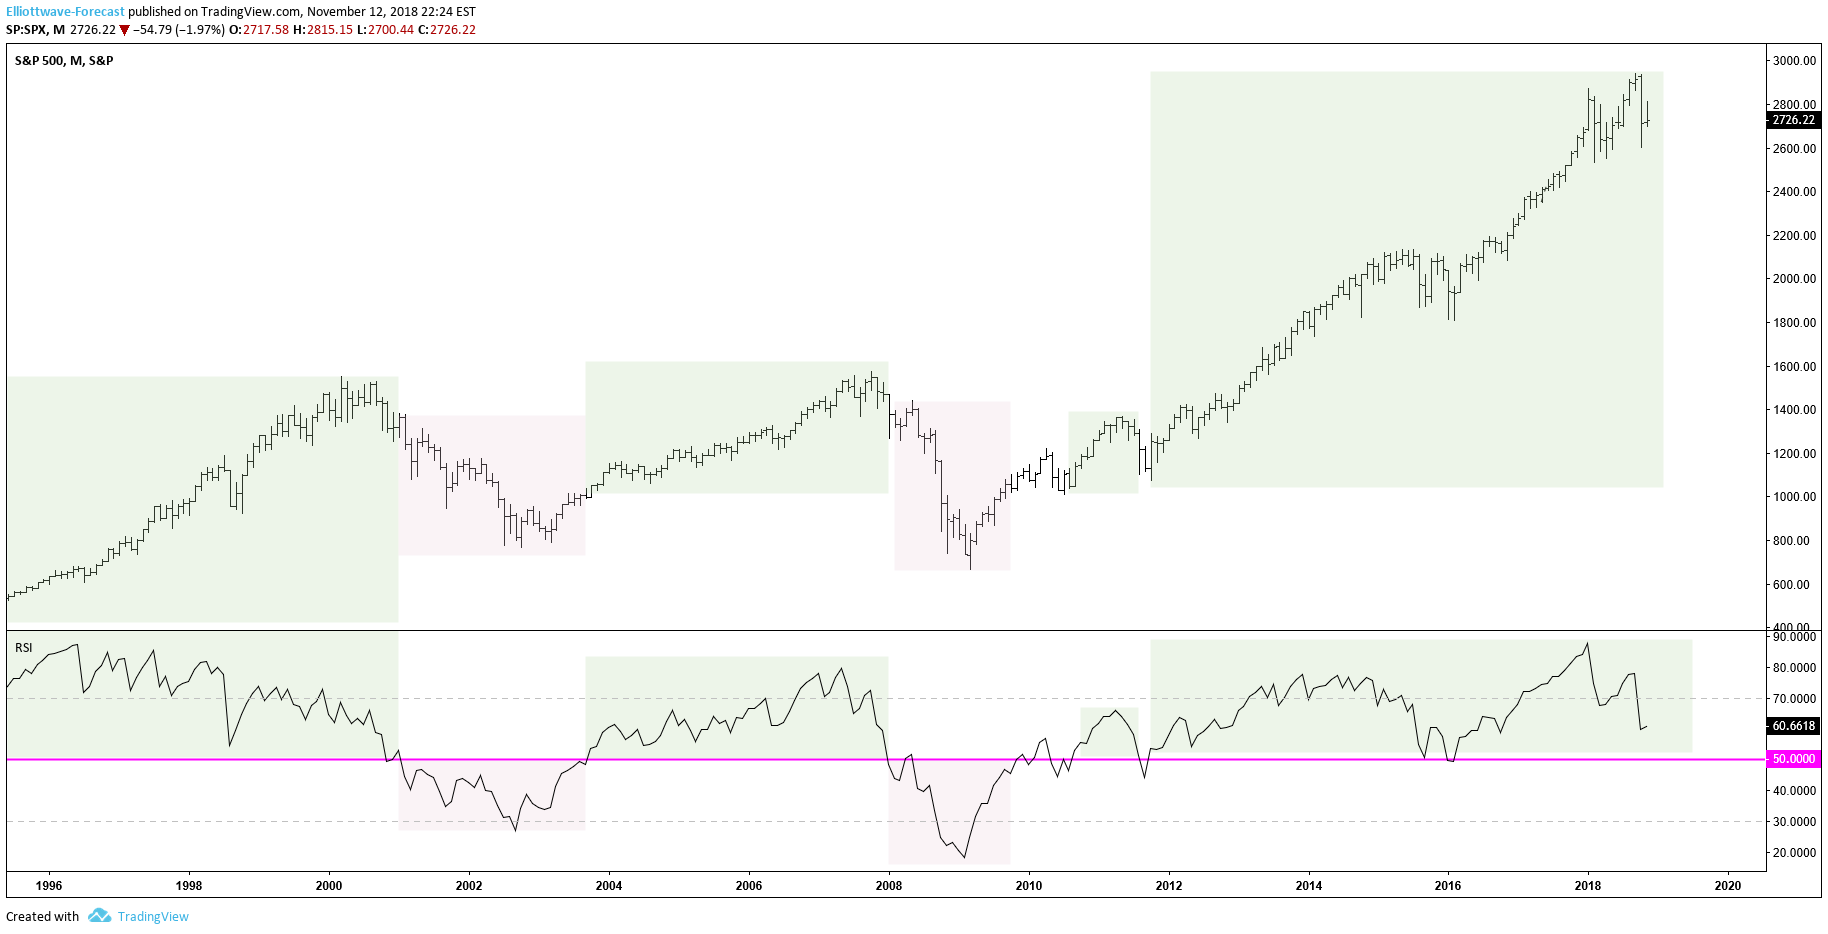 SPX RSI Analysis Suggests the Sky Isn't Falling – Yet